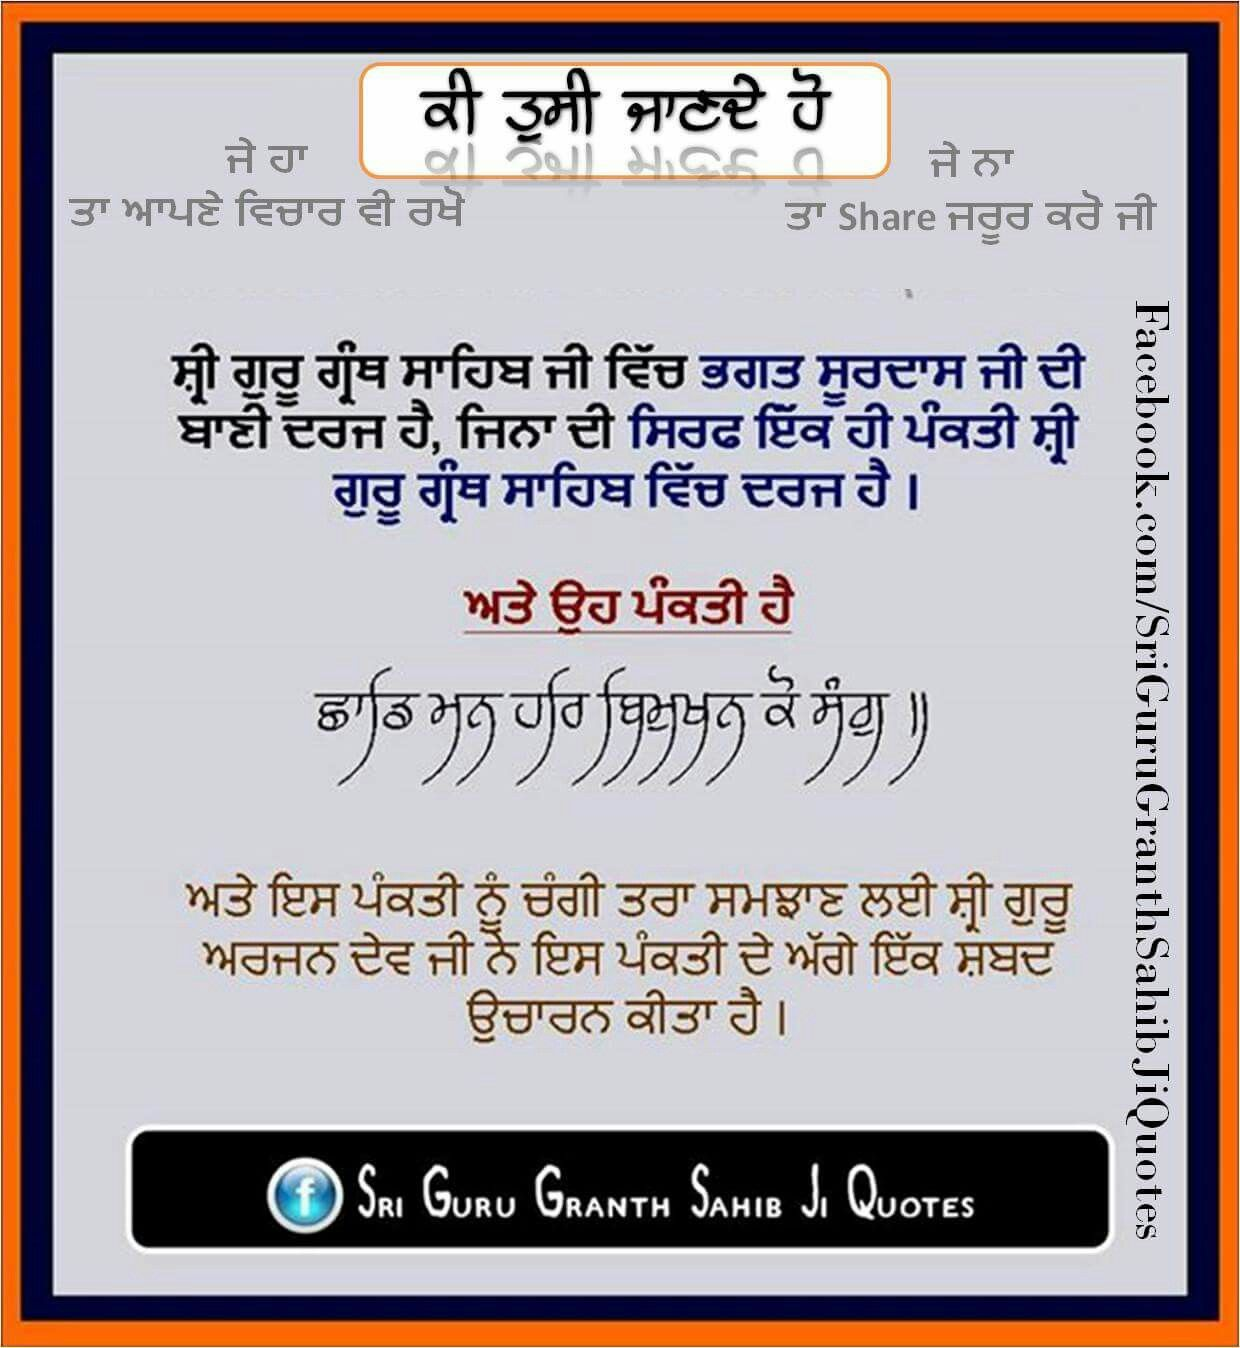 Shri Guru Granth Sahib: Pin By Renu Harjani On Gur Bani/Punjabi